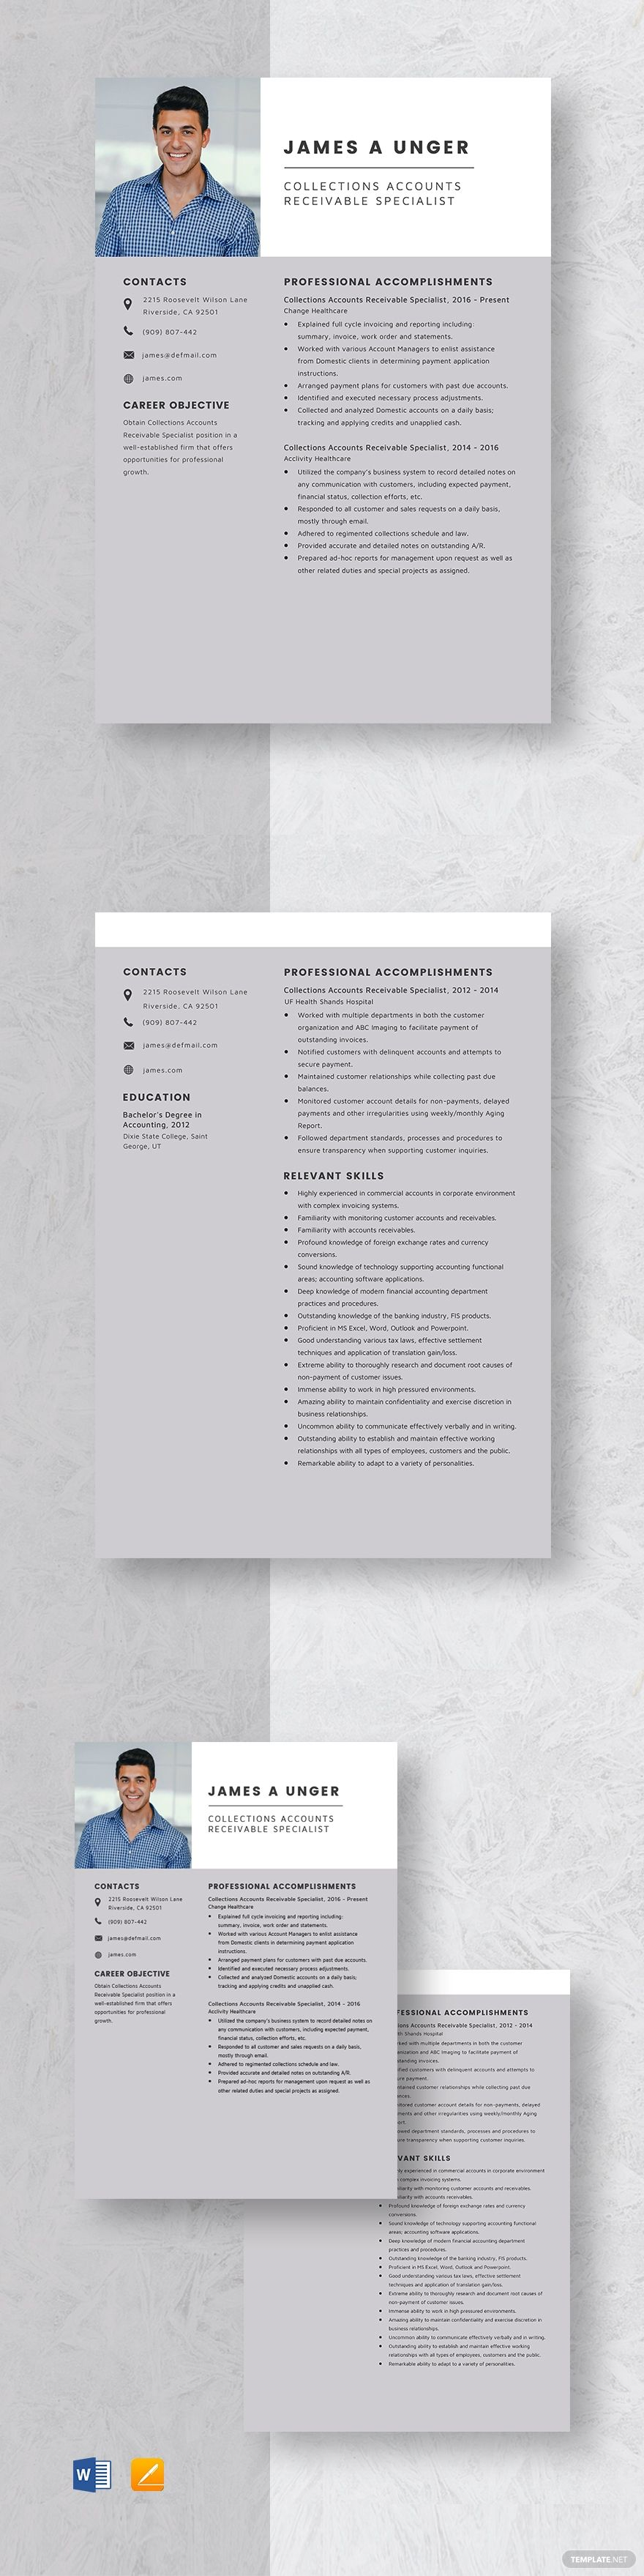 Pin On Website Templates Layout Landing Pages